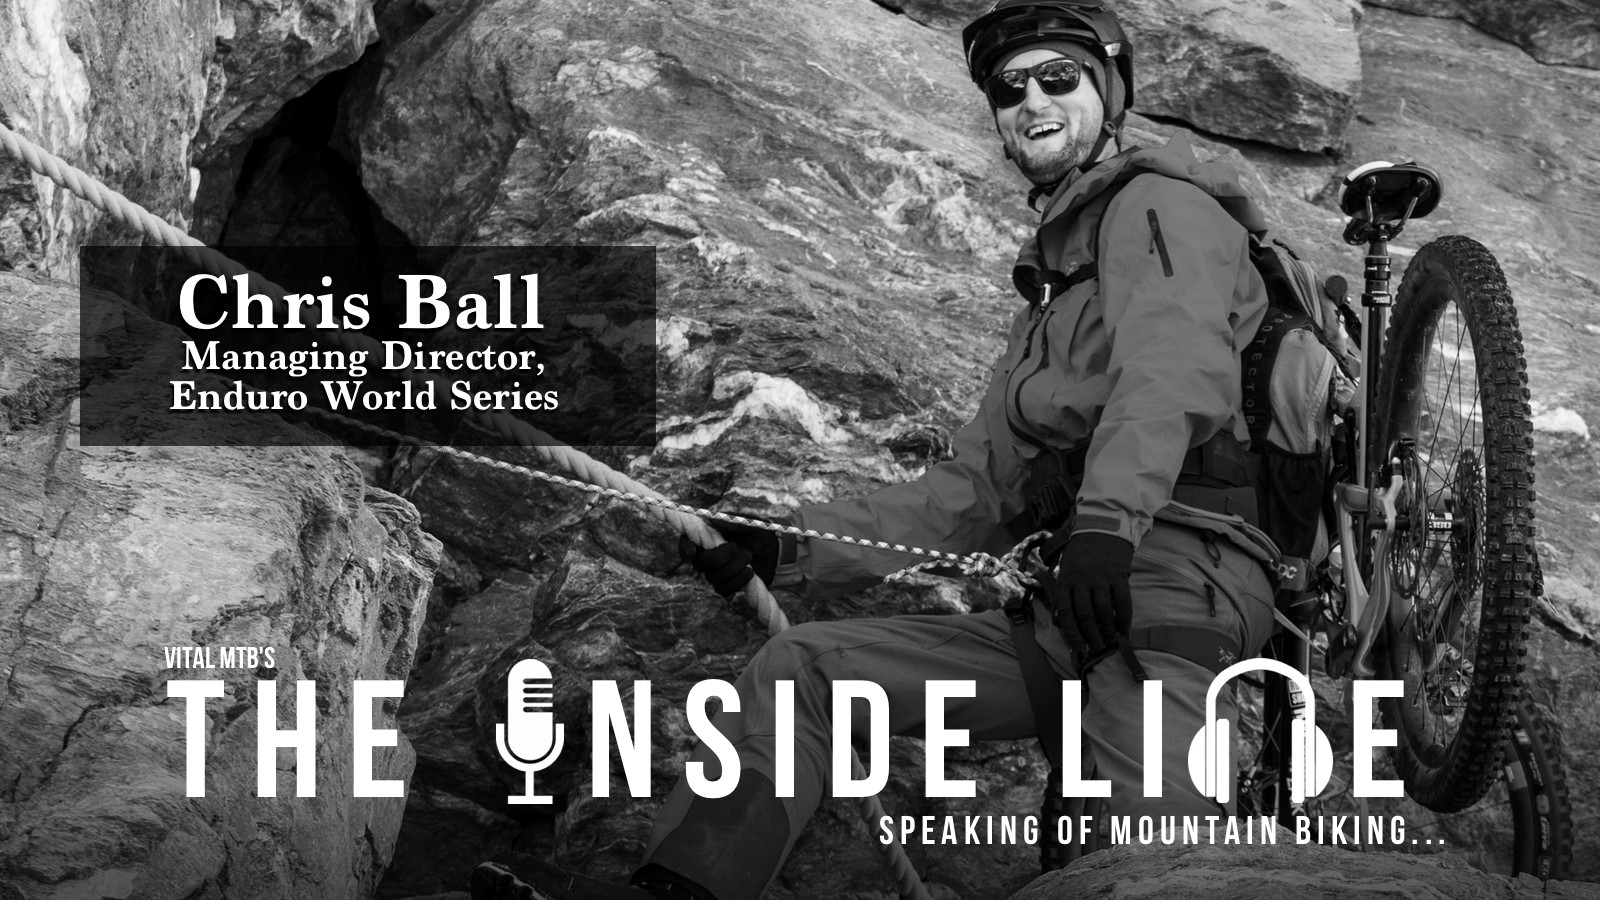 The Inside Line Podcast - Chris Ball, Managing Director of the Enduro World Series